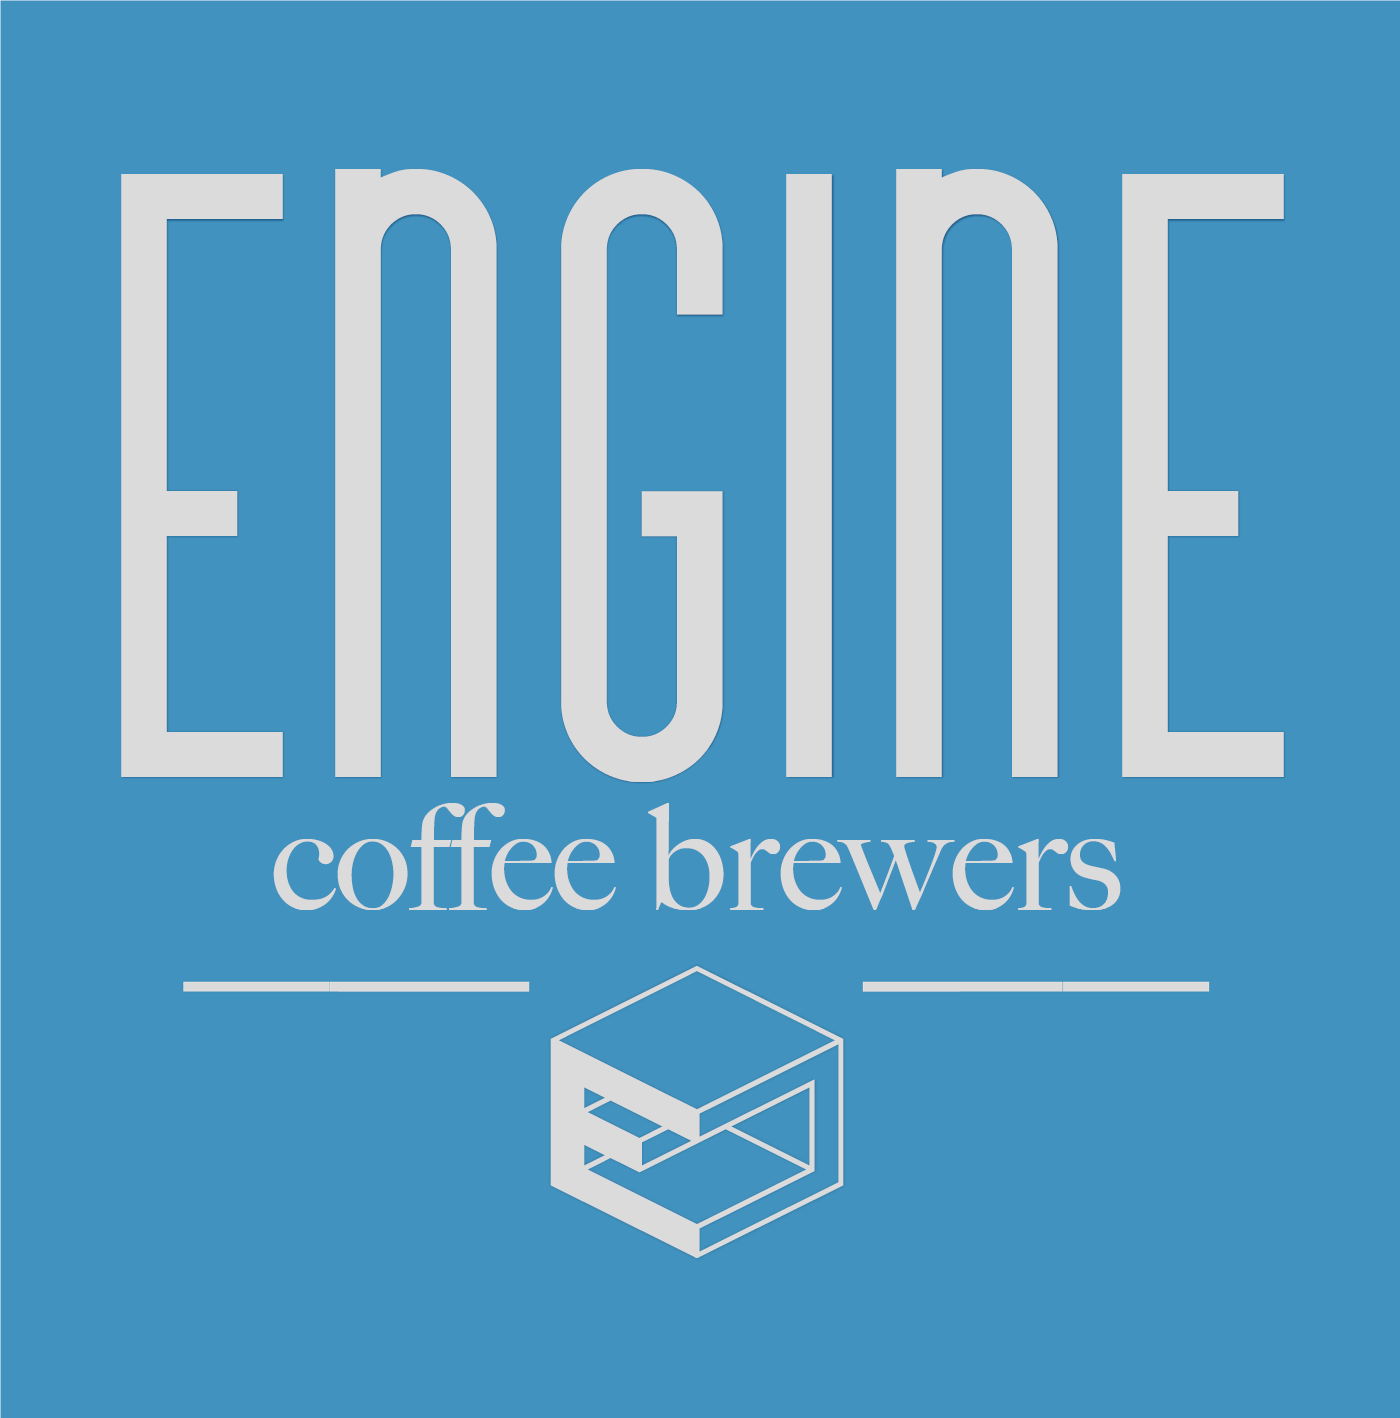 ENGINECOFFEEBREWERSfinallogo.png